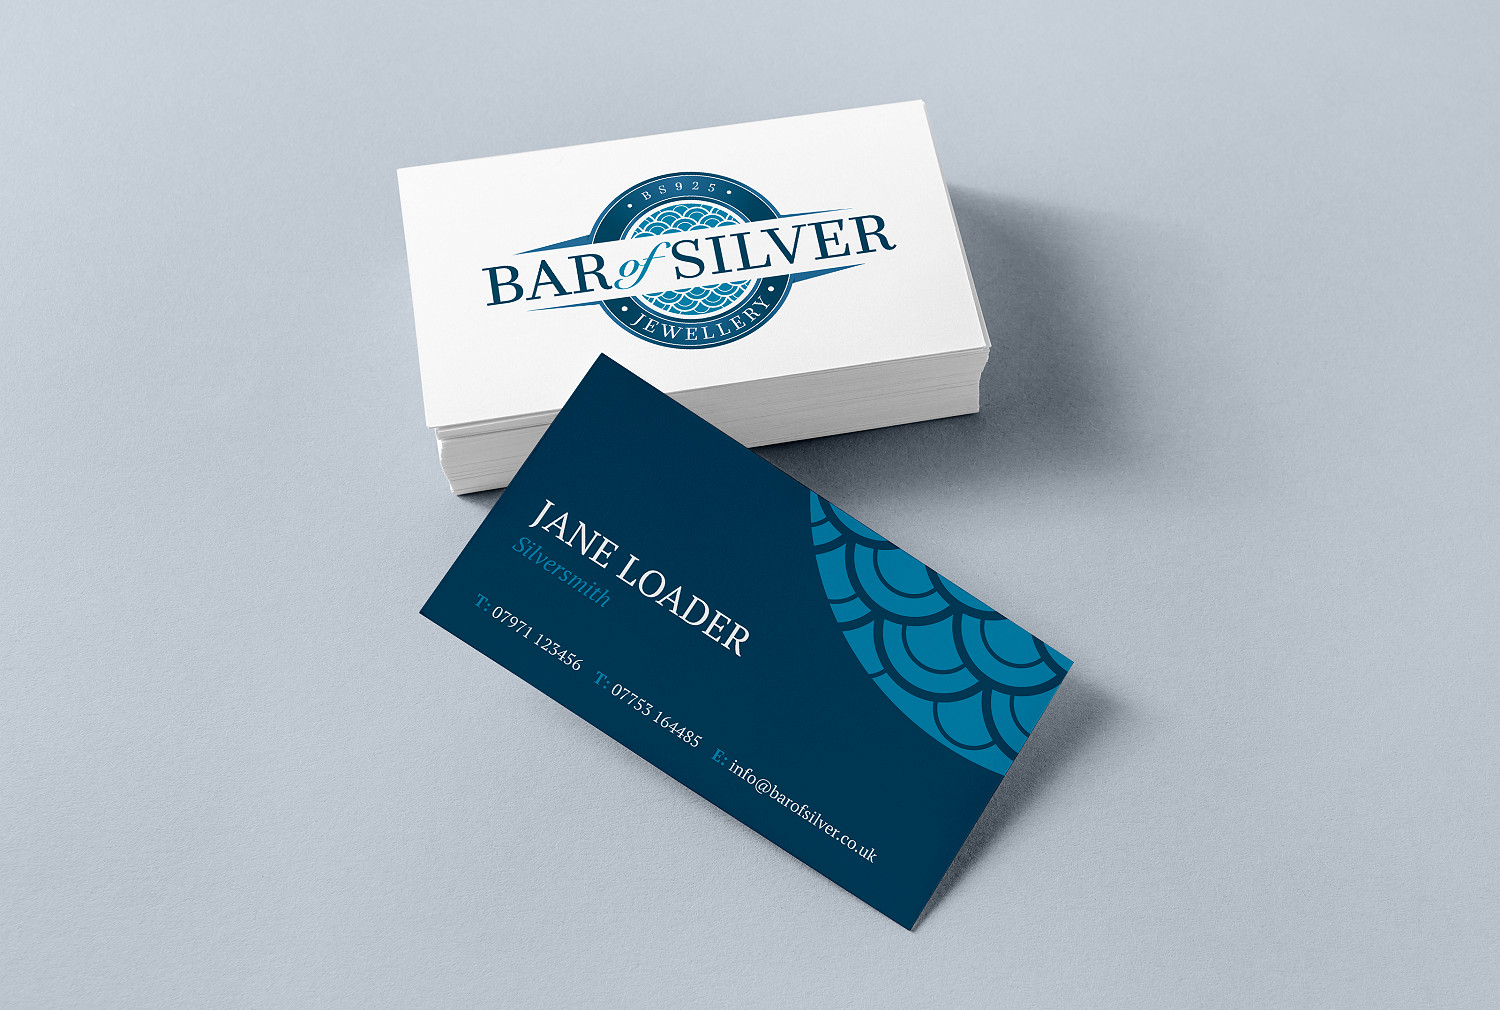 Bar of Silver Business Card Design